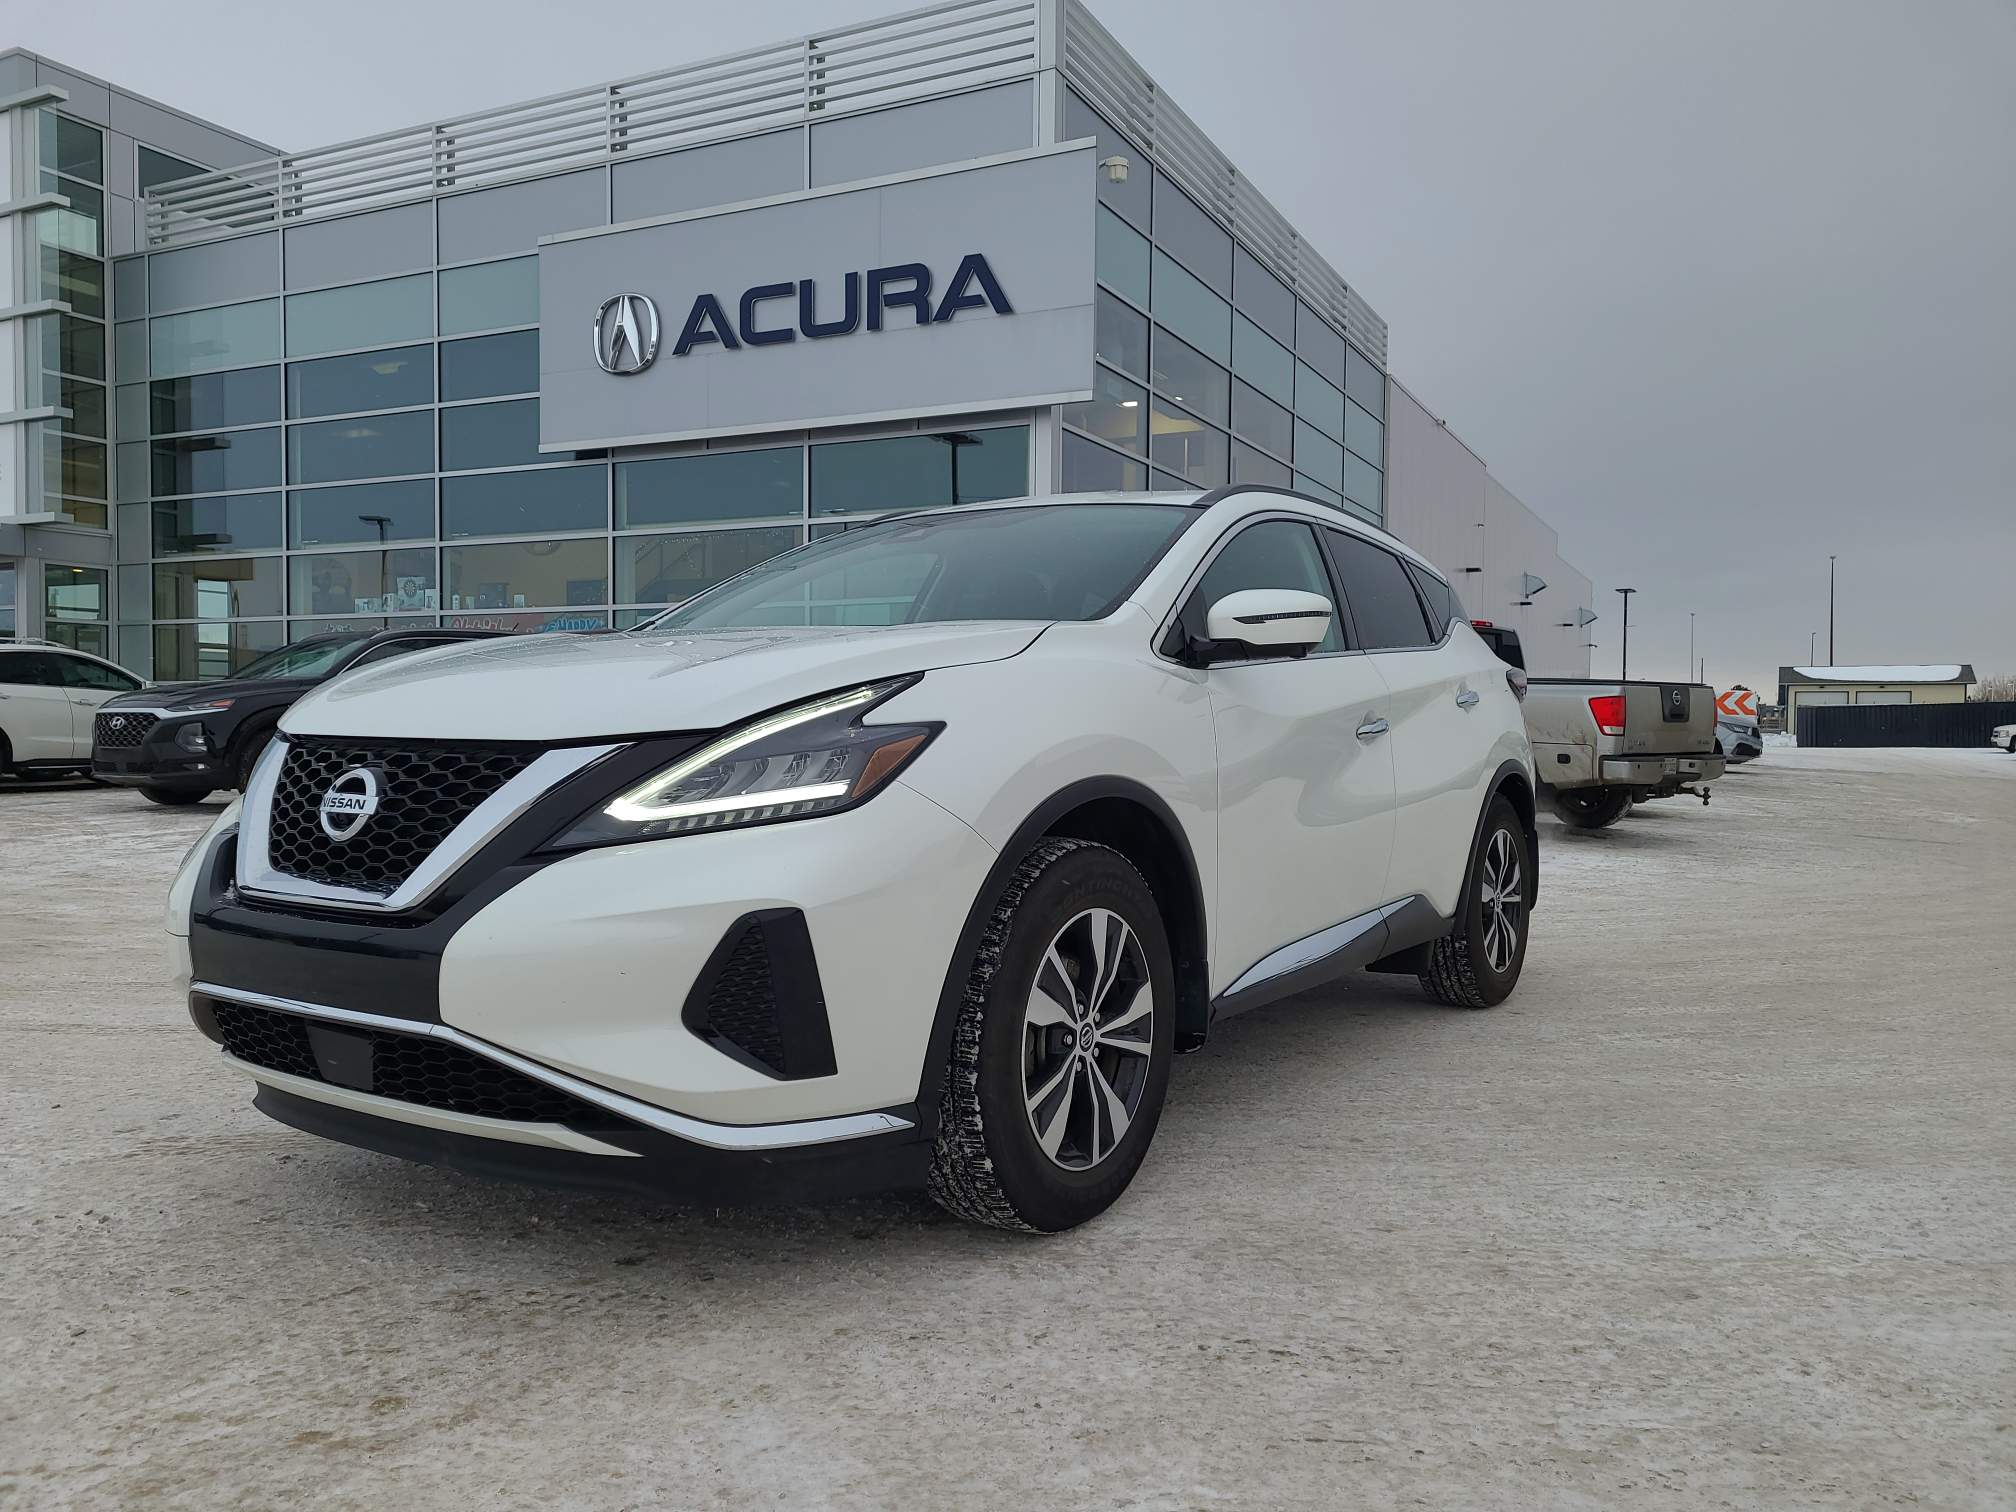 used 2020 Nissan Murano car, priced at $29,986